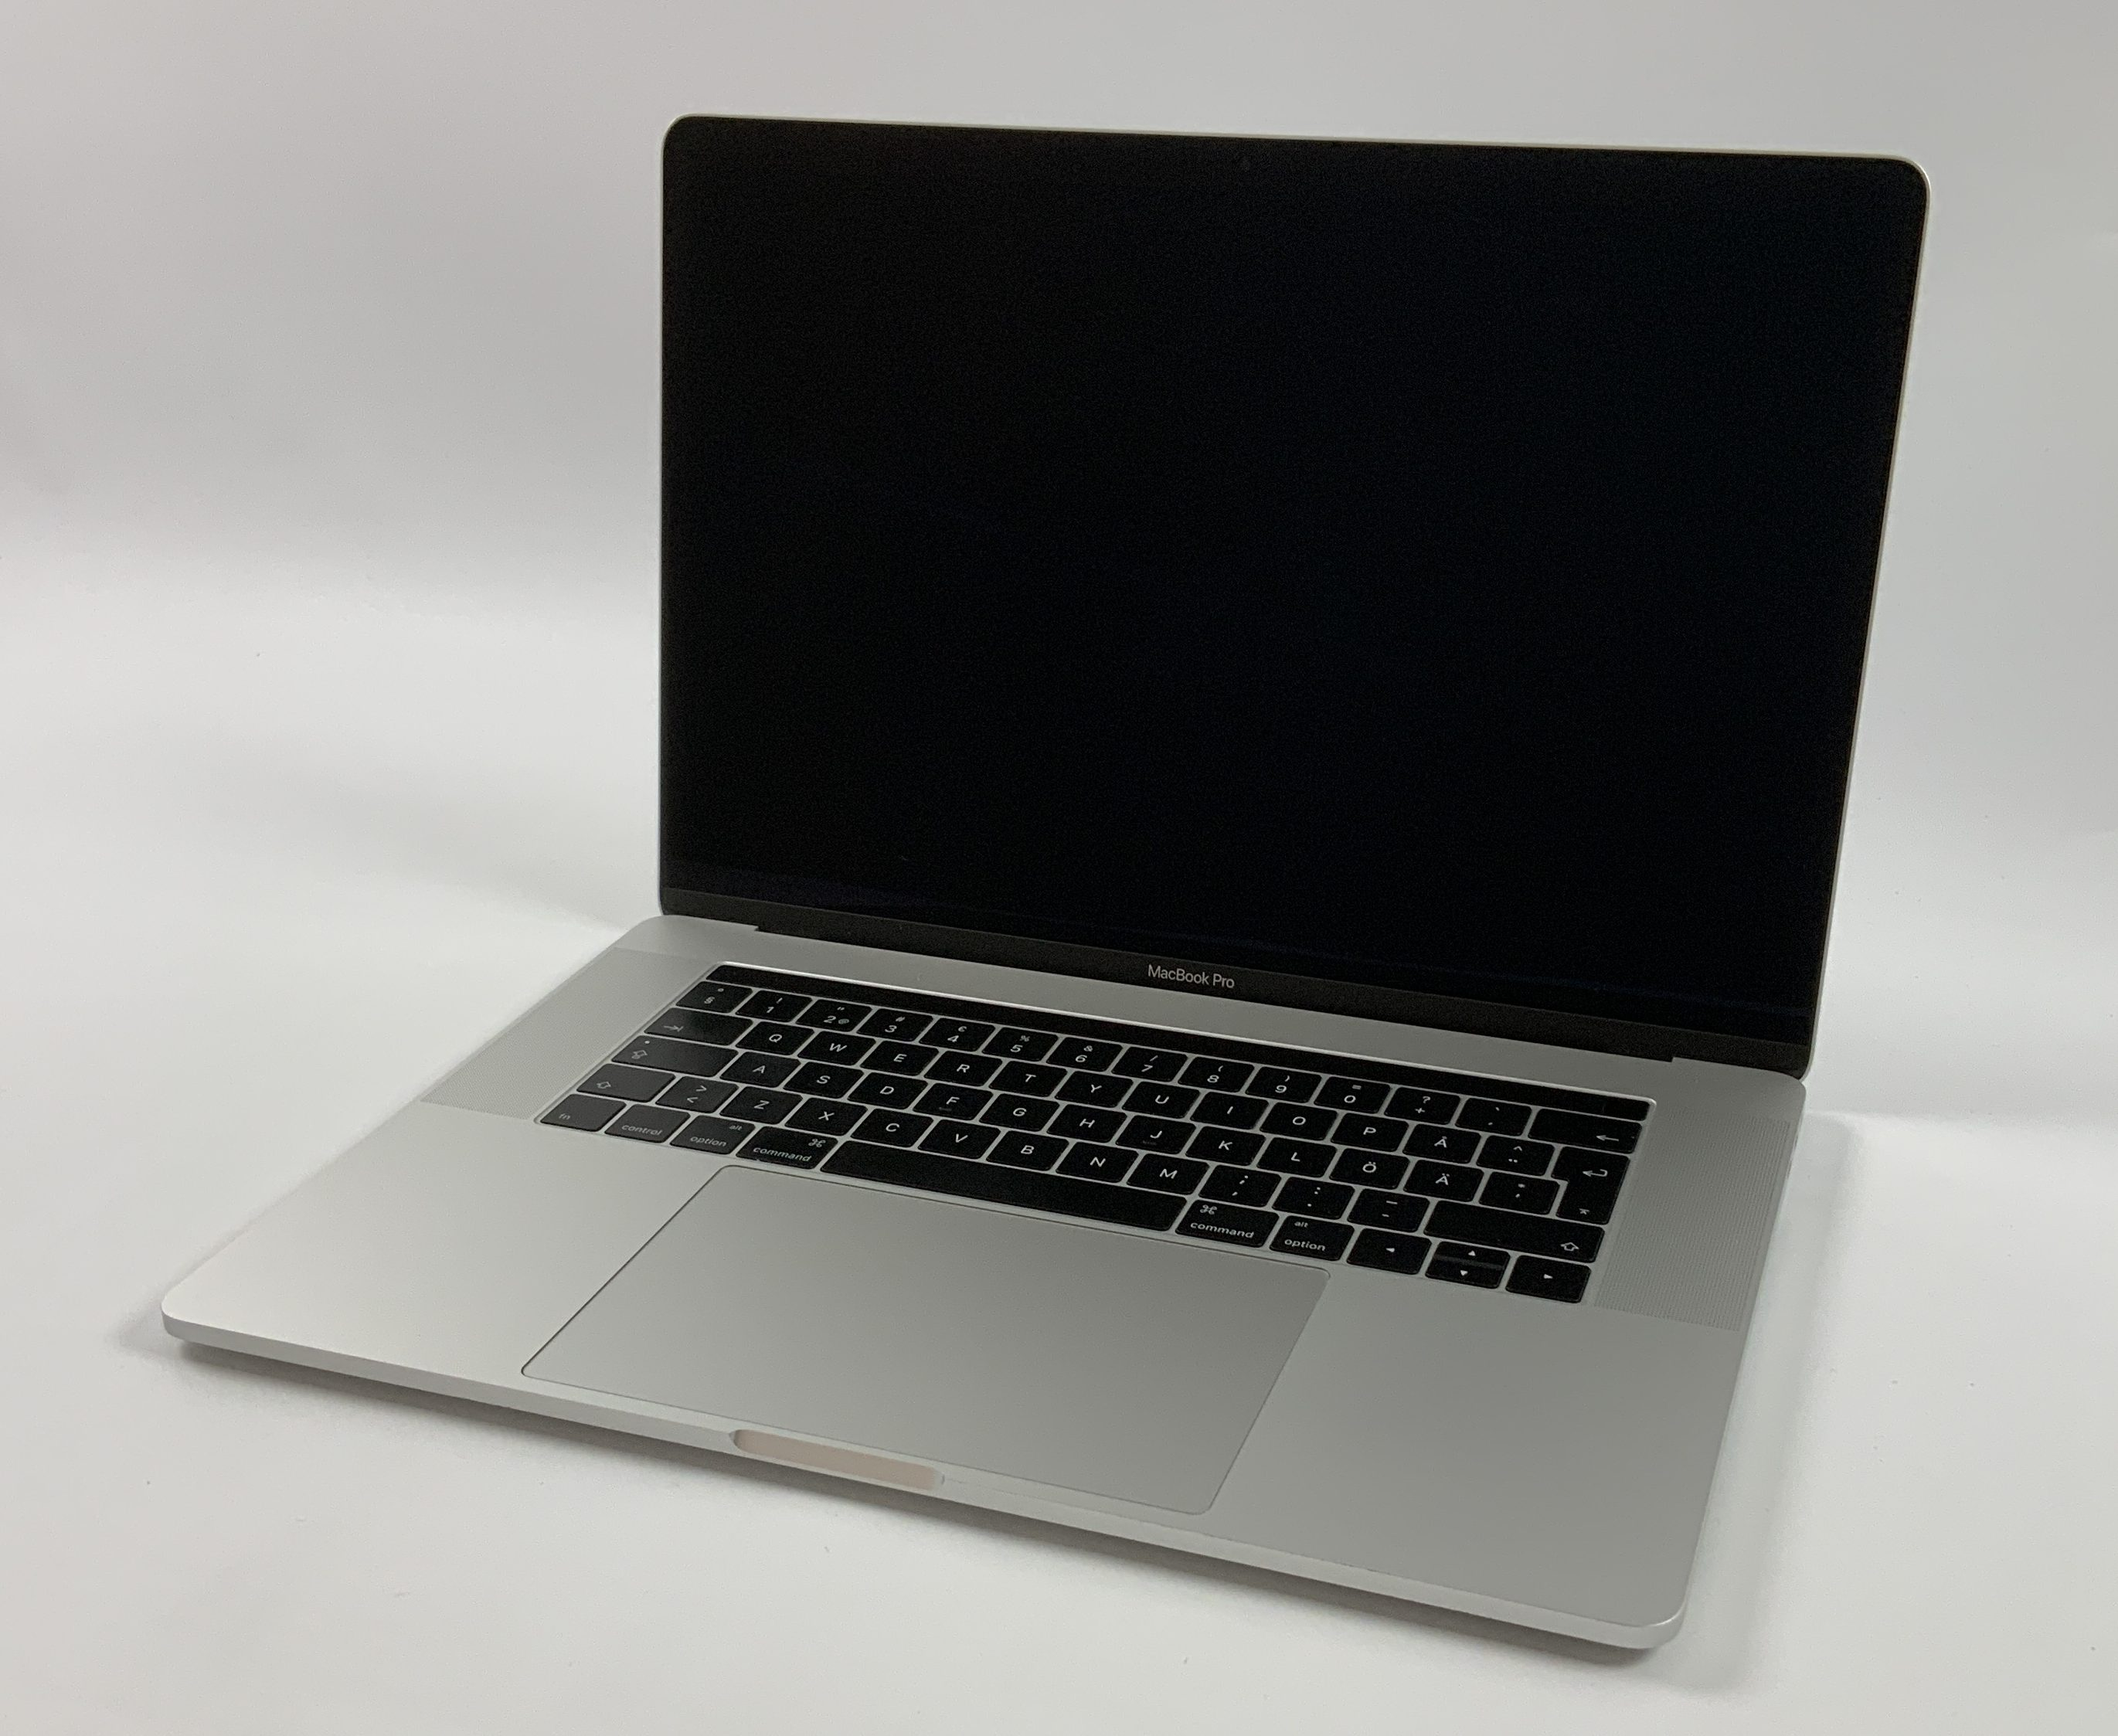 "MacBook Pro 15"" Touch Bar Late 2016 (Intel Quad-Core i7 2.7 GHz 16 GB RAM 512 GB SSD), Silver, Intel Quad-Core i7 2.7 GHz, 16 GB RAM, 512 GB SSD, immagine 1"